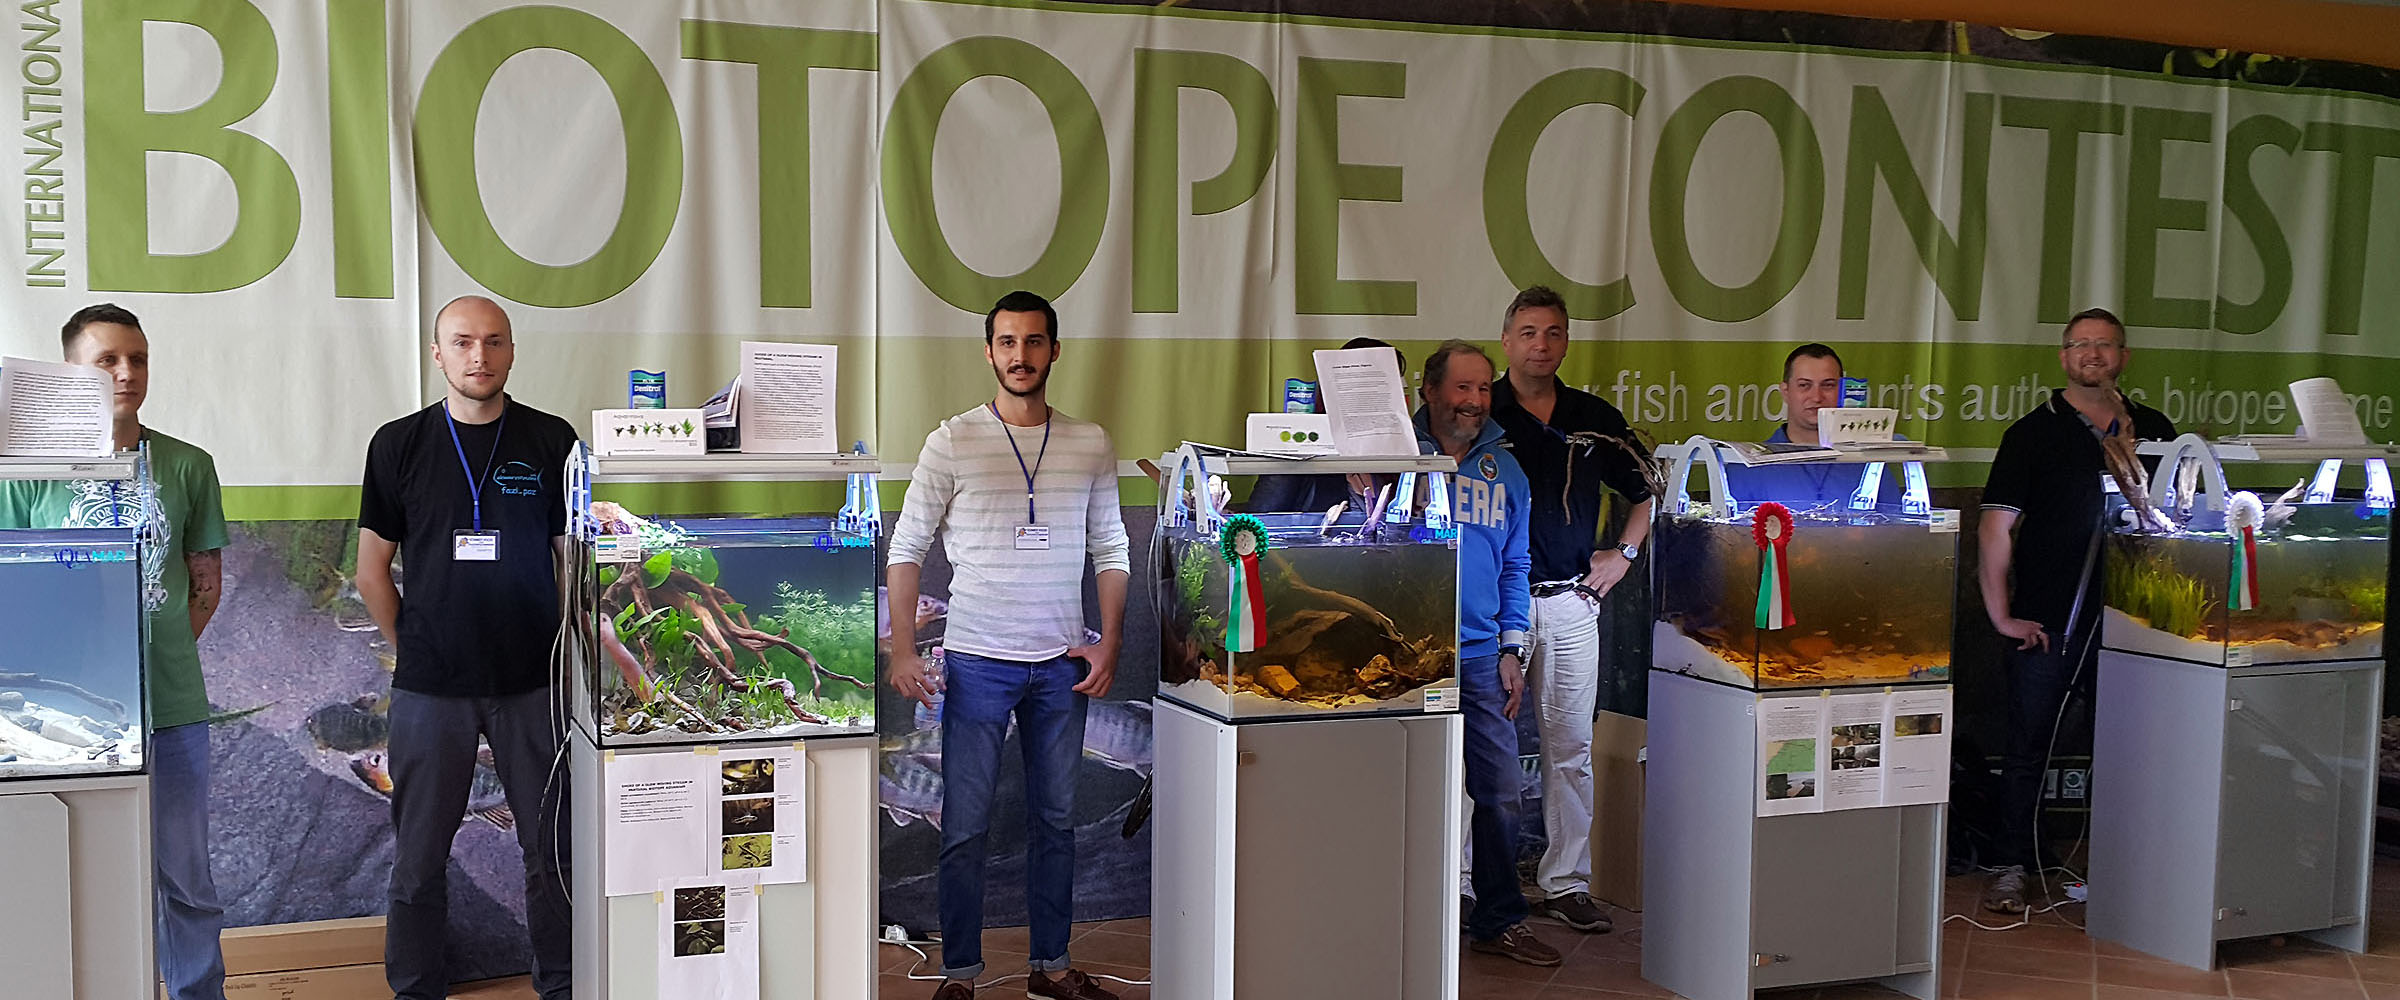 Biotope Aquarium Contest 2015, Italy. ©BAP, photo N. Khardina